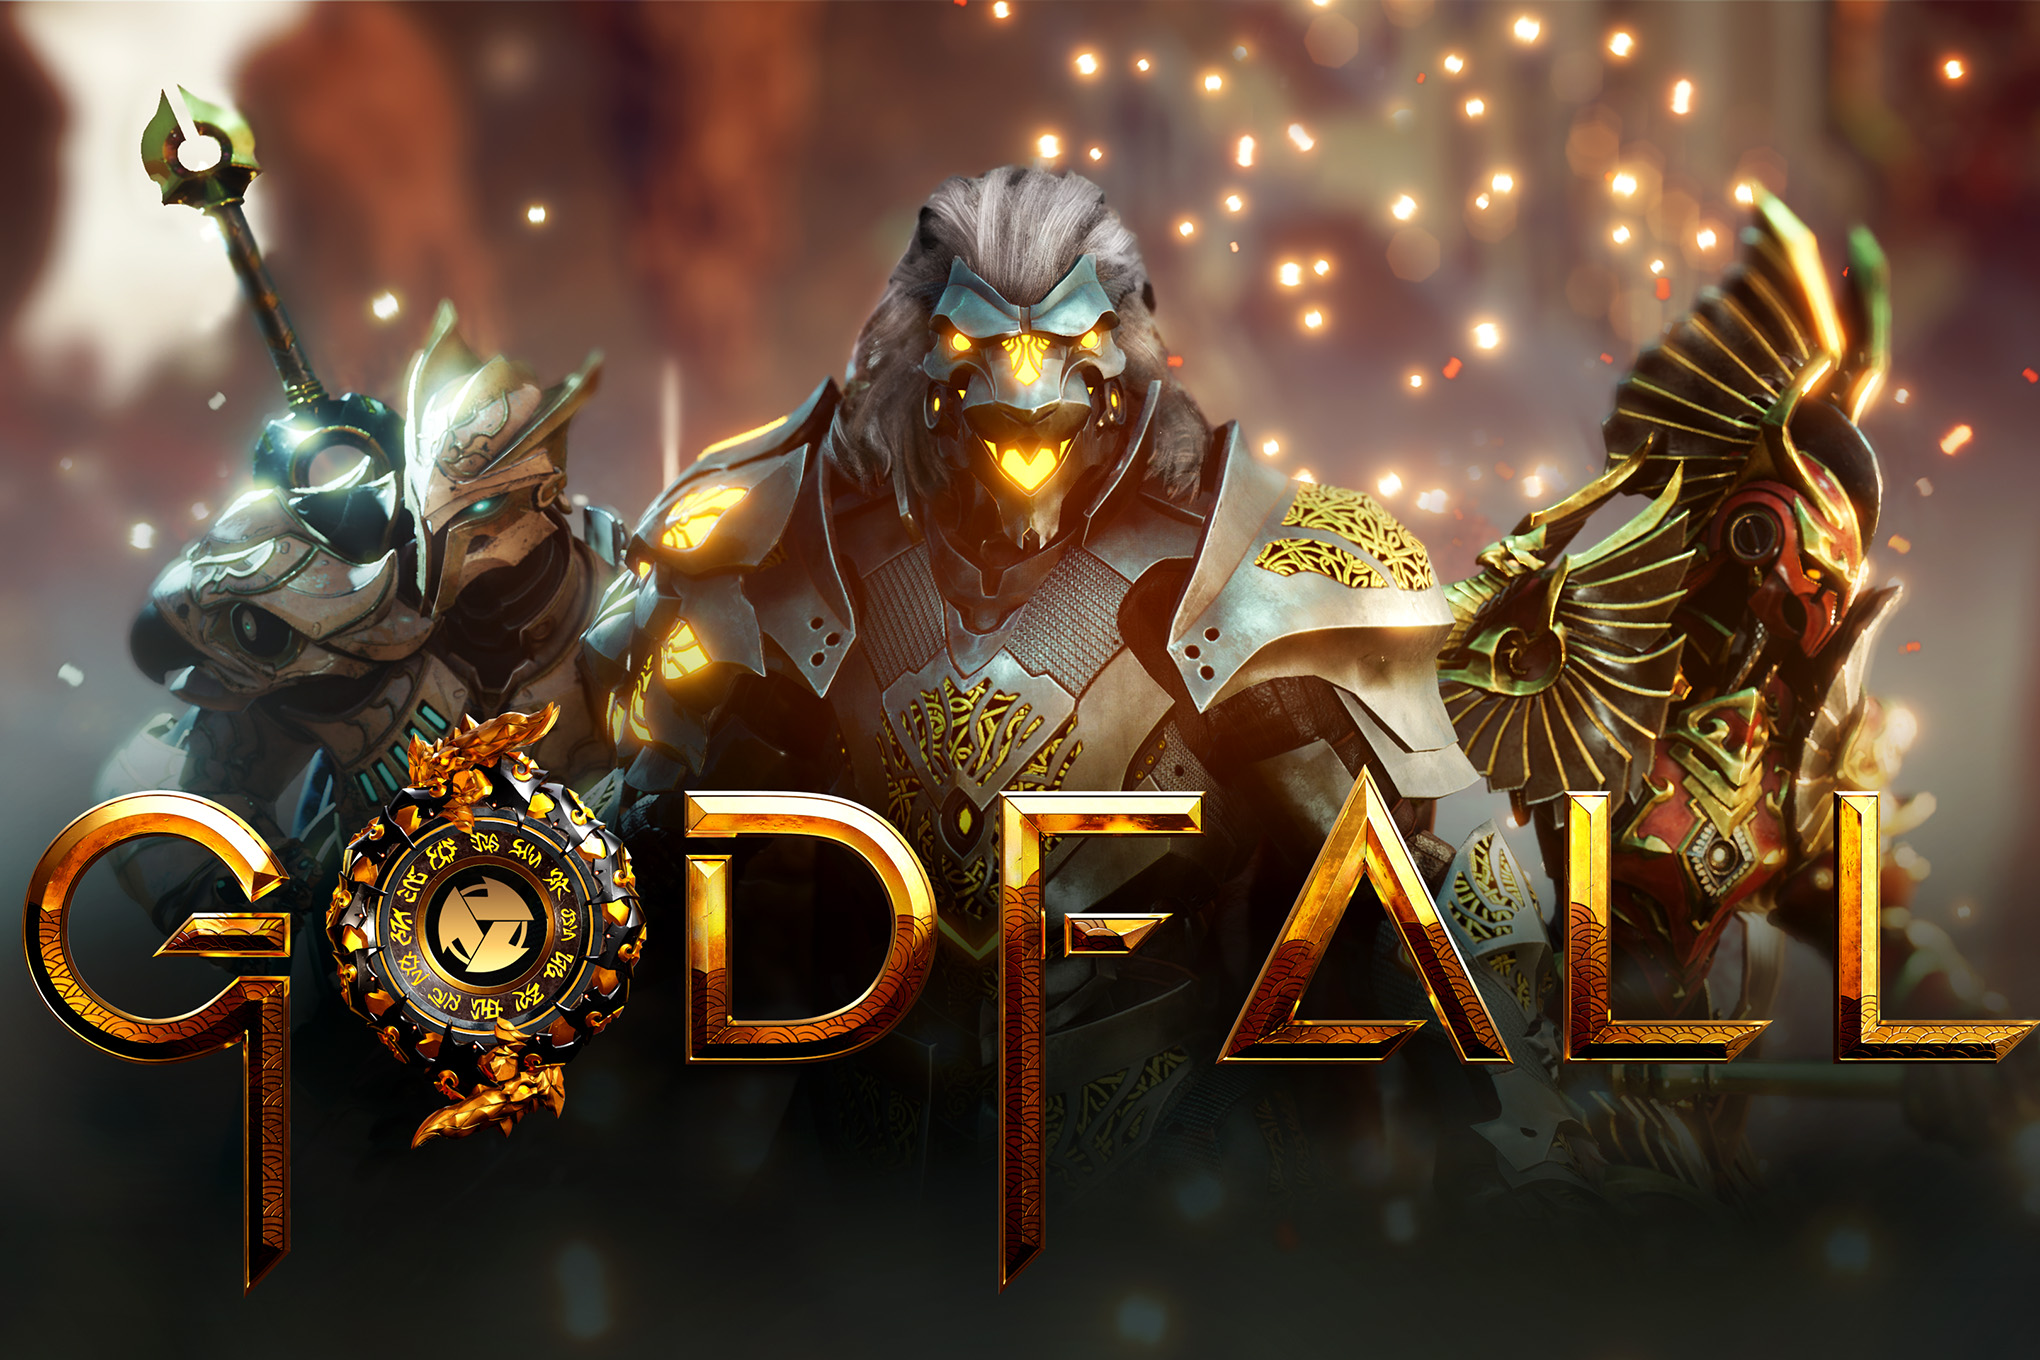 Key art for Godfall shows three armored figures, each with animalistic features. In the center a lion, on the right a bird. The background is hazy, with sparks of fire. They each glow with an internal light.